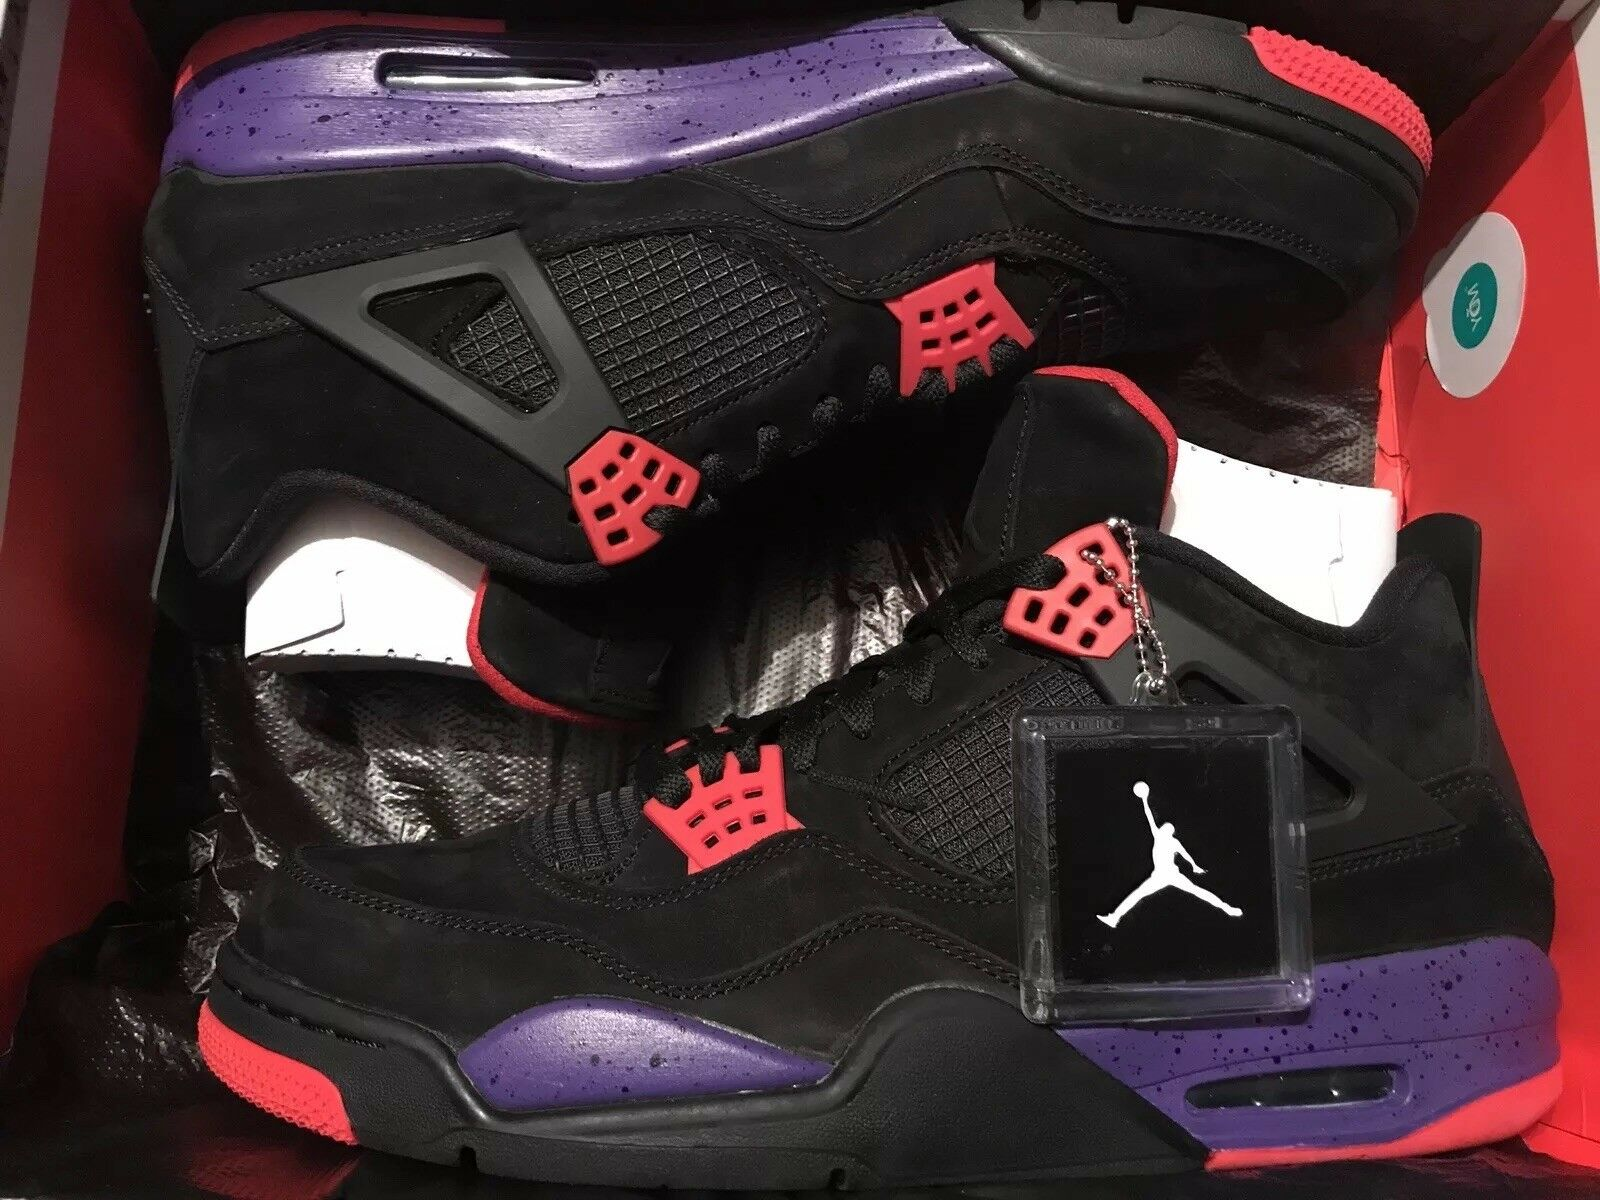 new style 190a6 1d75e Air Jordan 4 Retro NRG Raptor Court Purple Aq3816-065 Size 13 DS Limited